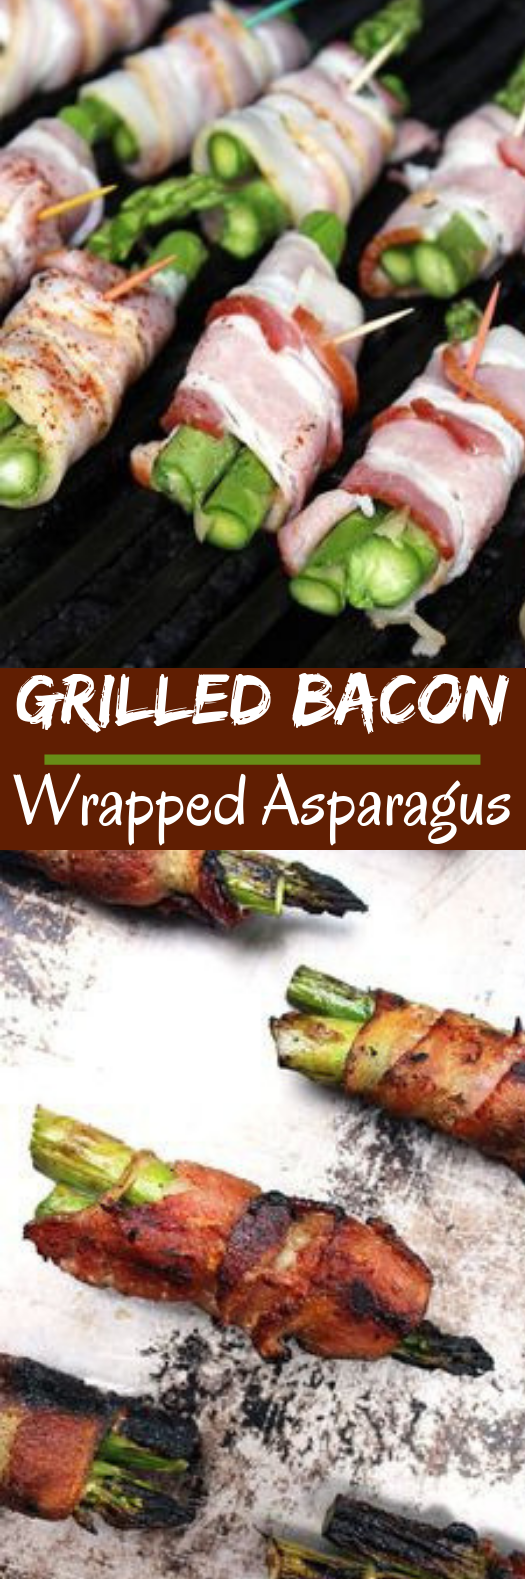 Grilled Bacon Wrapped Asparagus #healthy #keto